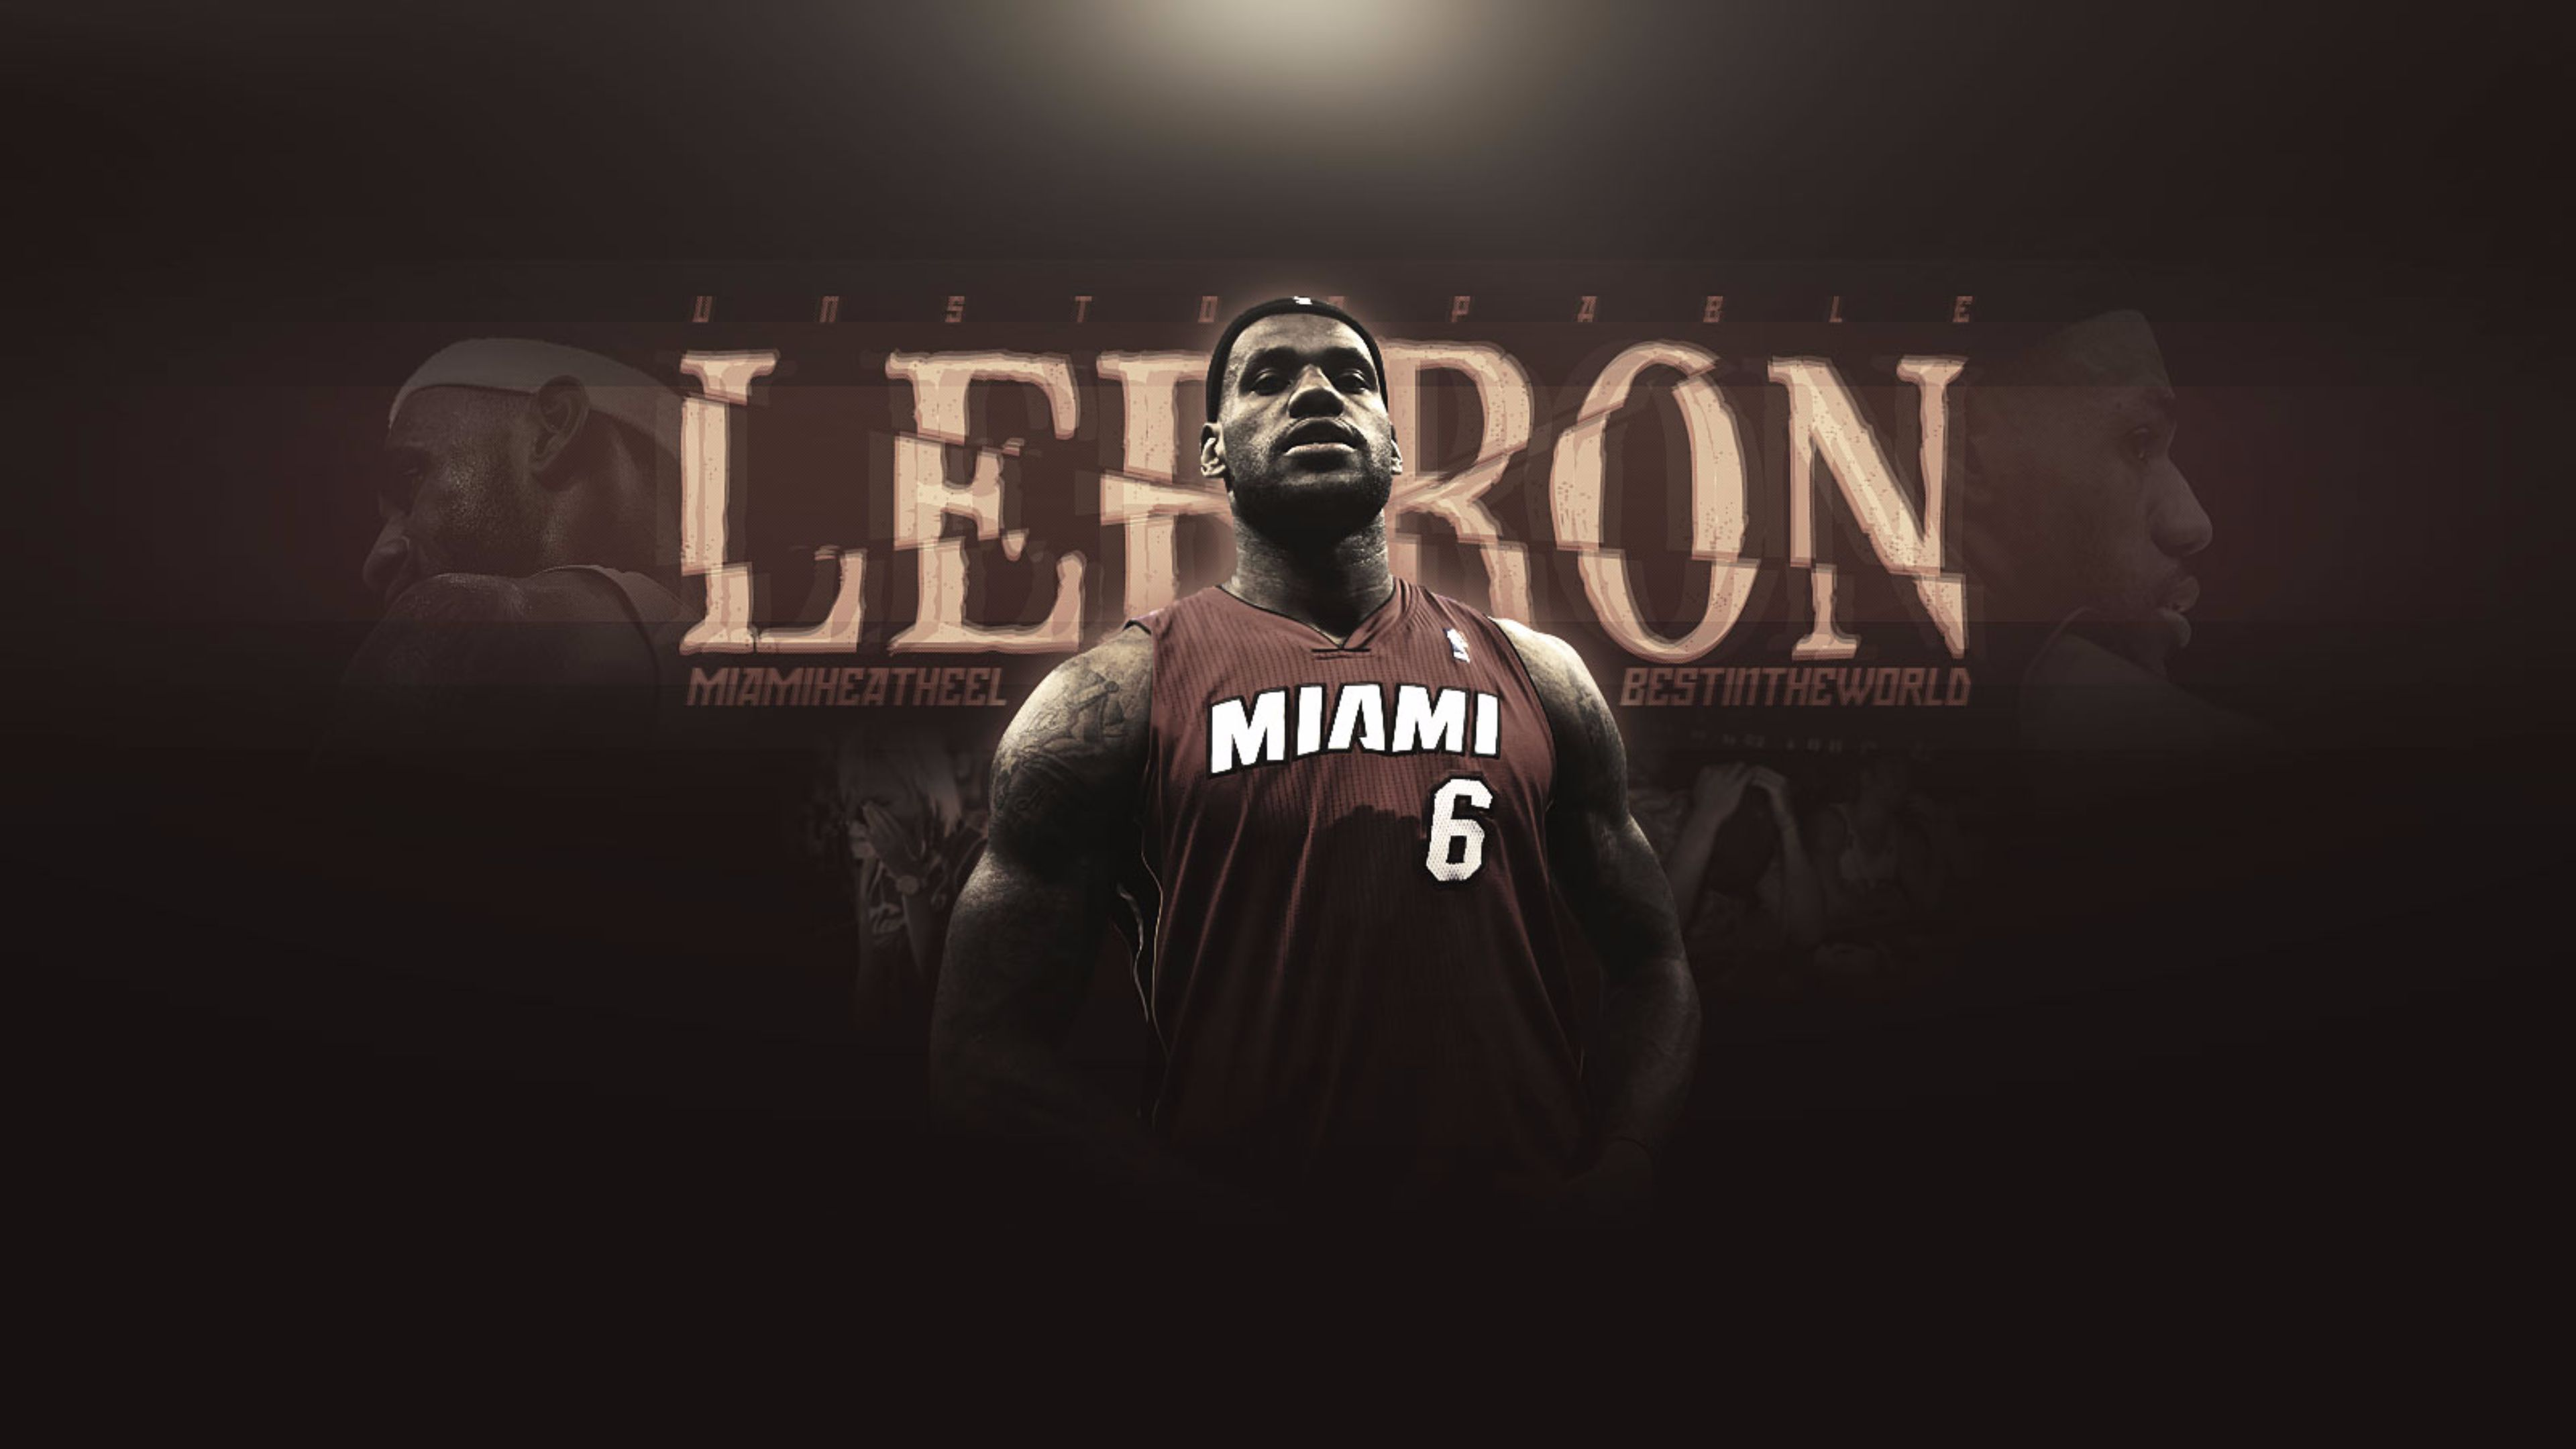 LeBron James Miami Heat 4K6745019958 - LeBron James Miami Heat 4K - Miami, Lebron, James, Heat, 2016